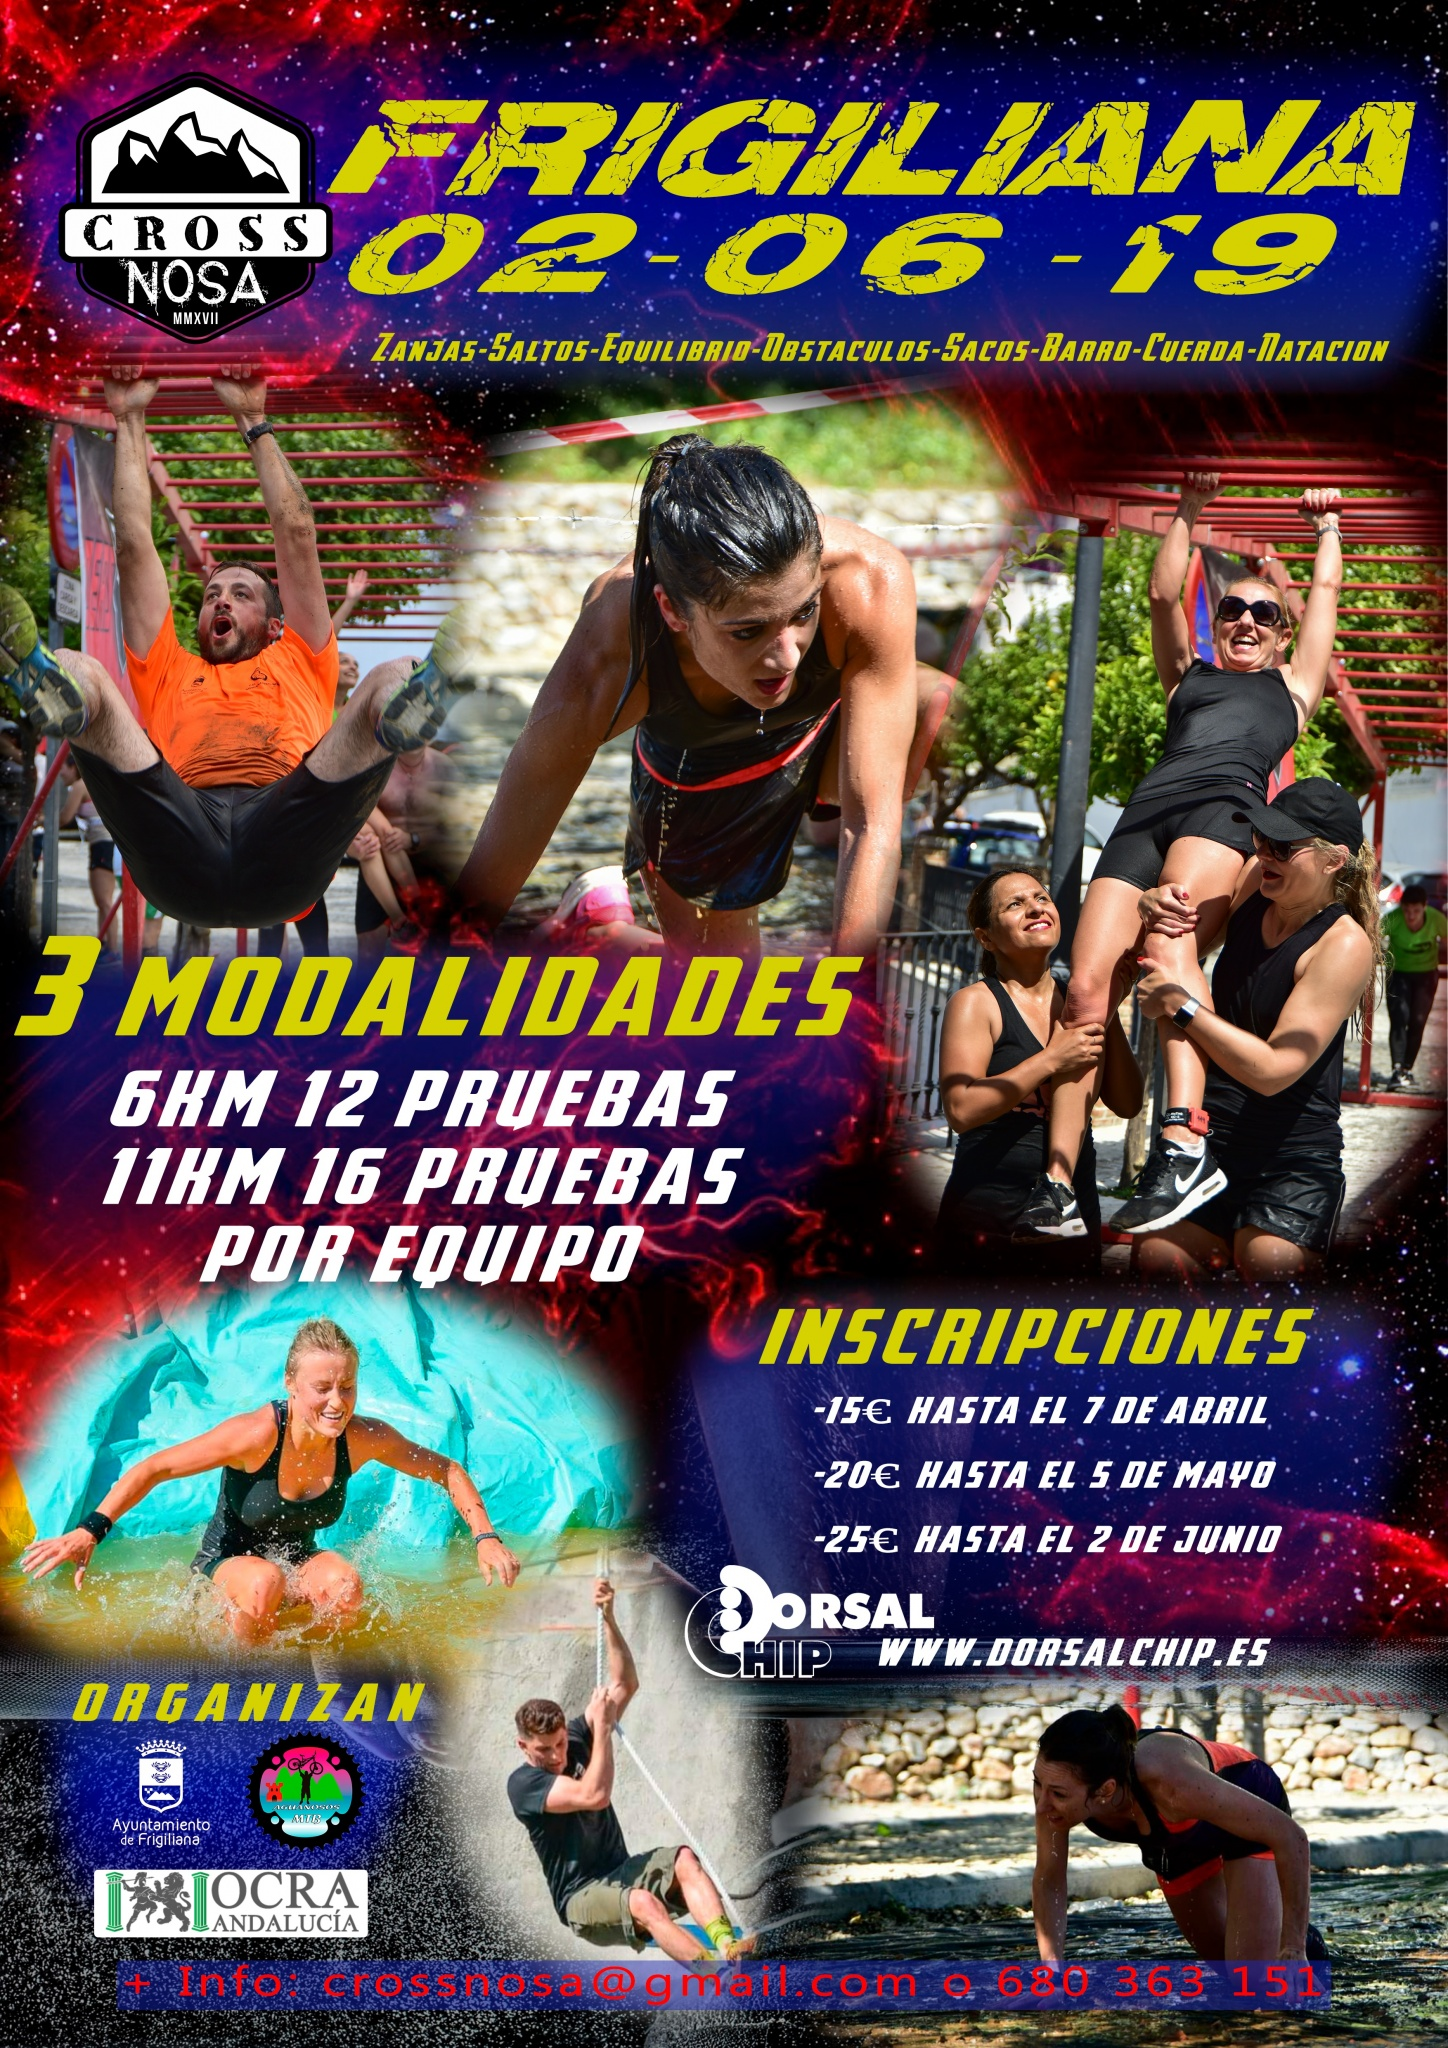 Third edition of the Crossnosa